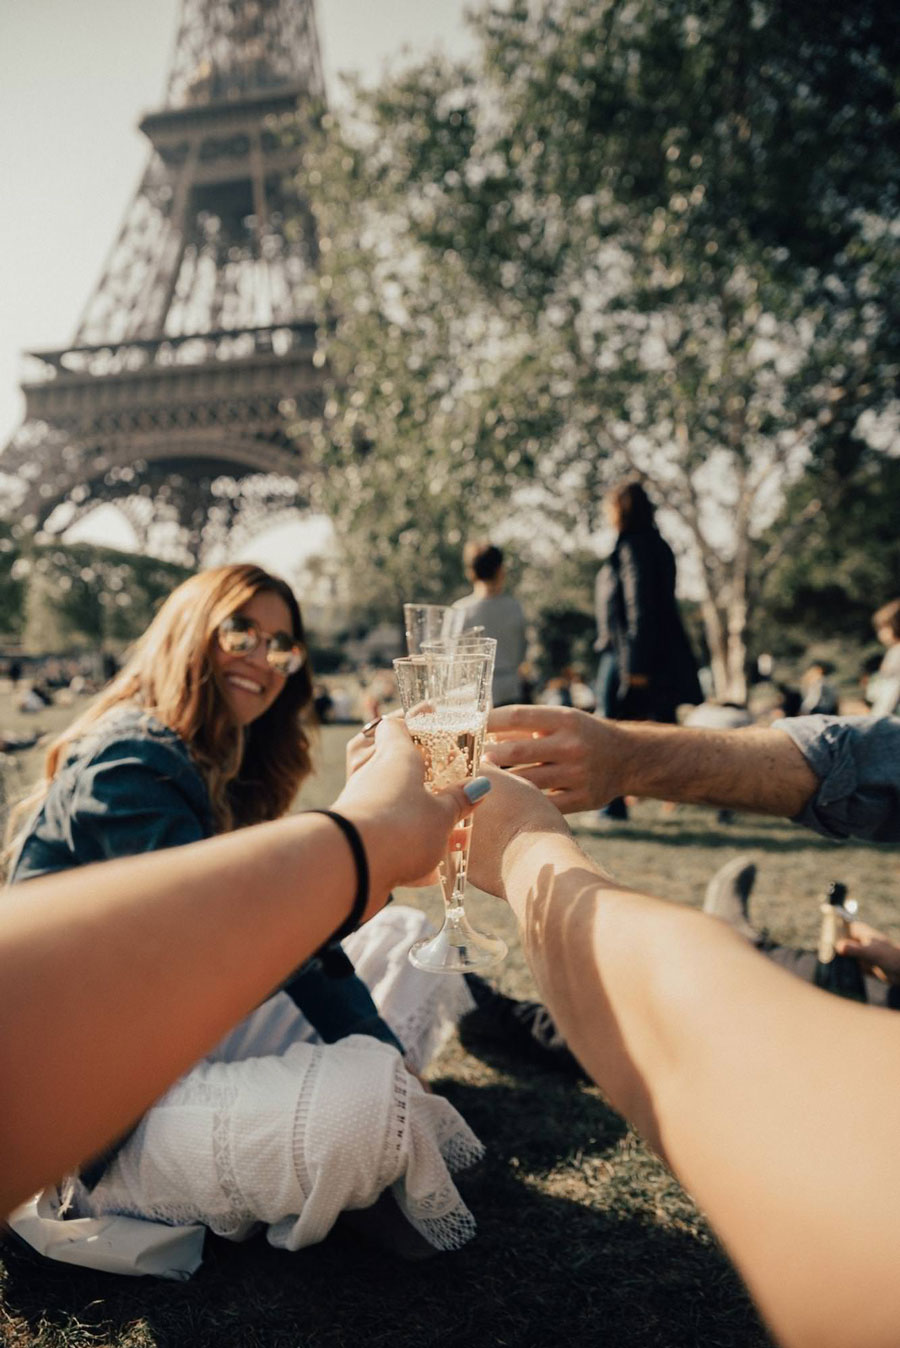 Paris is romantic and so perfectly in theme for your European bachelorette trip